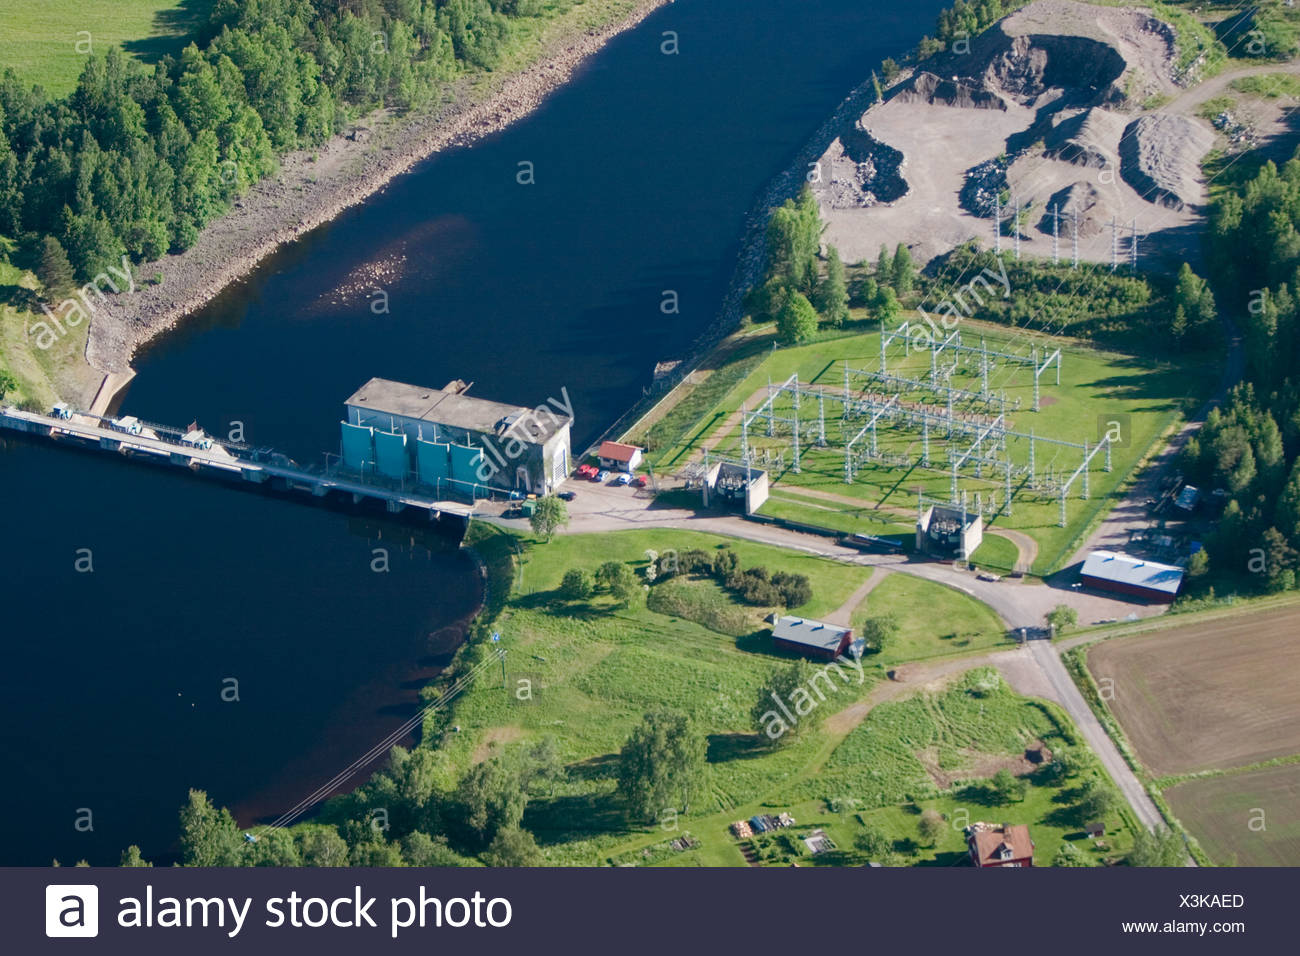 A power station by a river, Sweden. - Stock Image